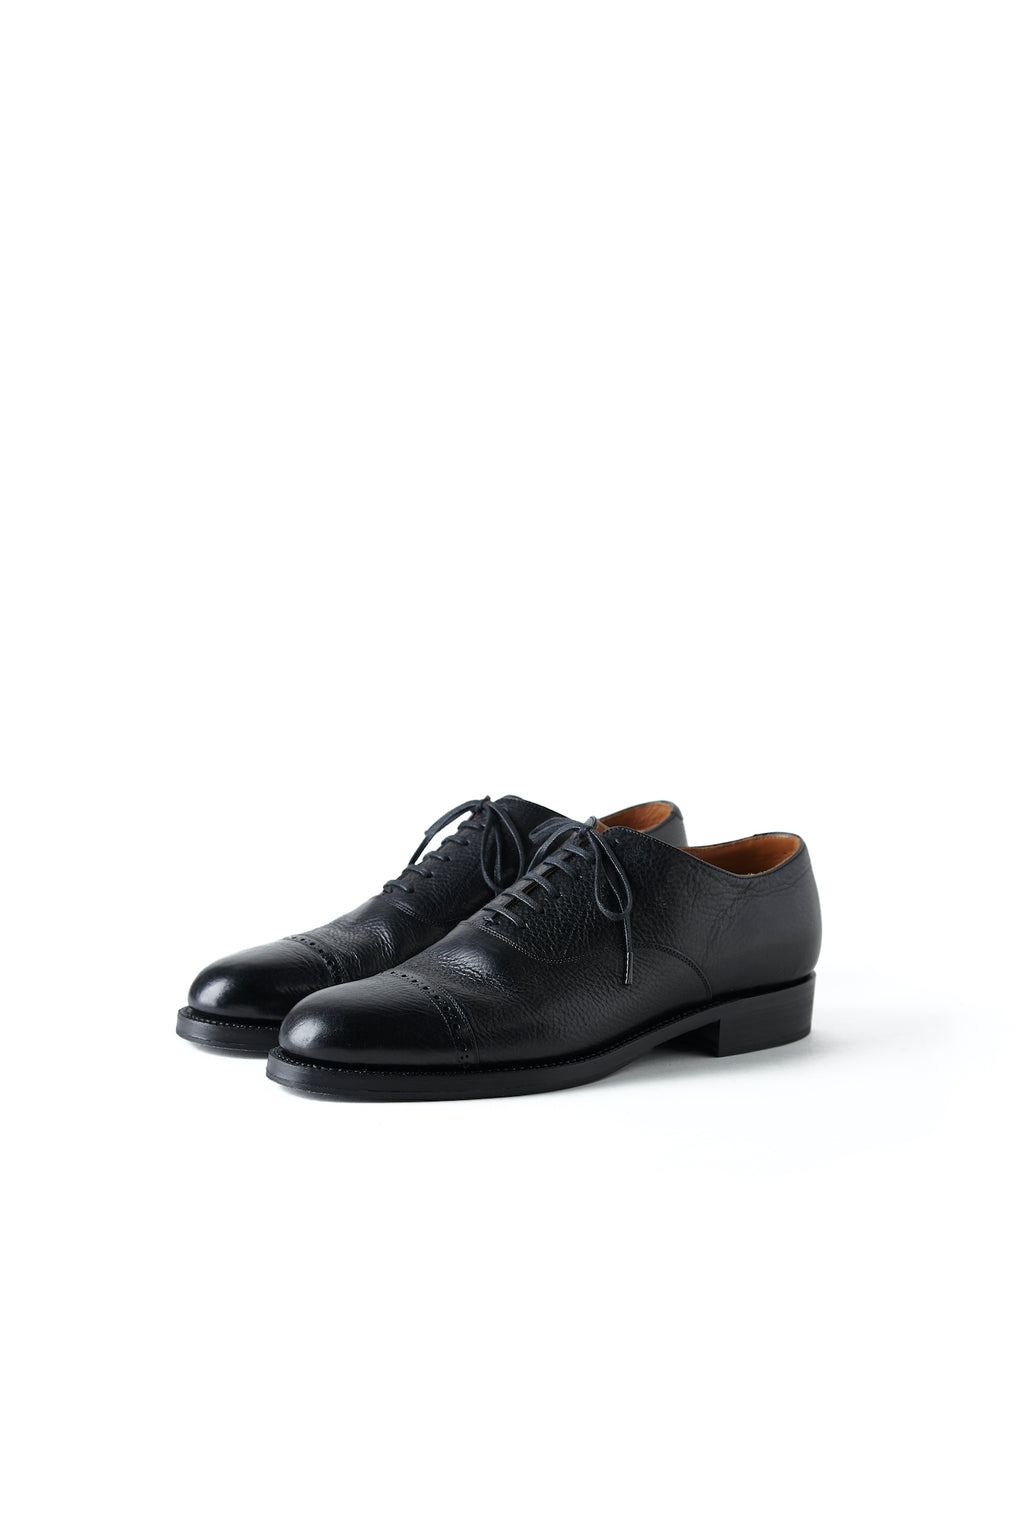 """The Banker"" VACHETTA LEATHER CAP TOE SHOES - 192OJ-FW04"